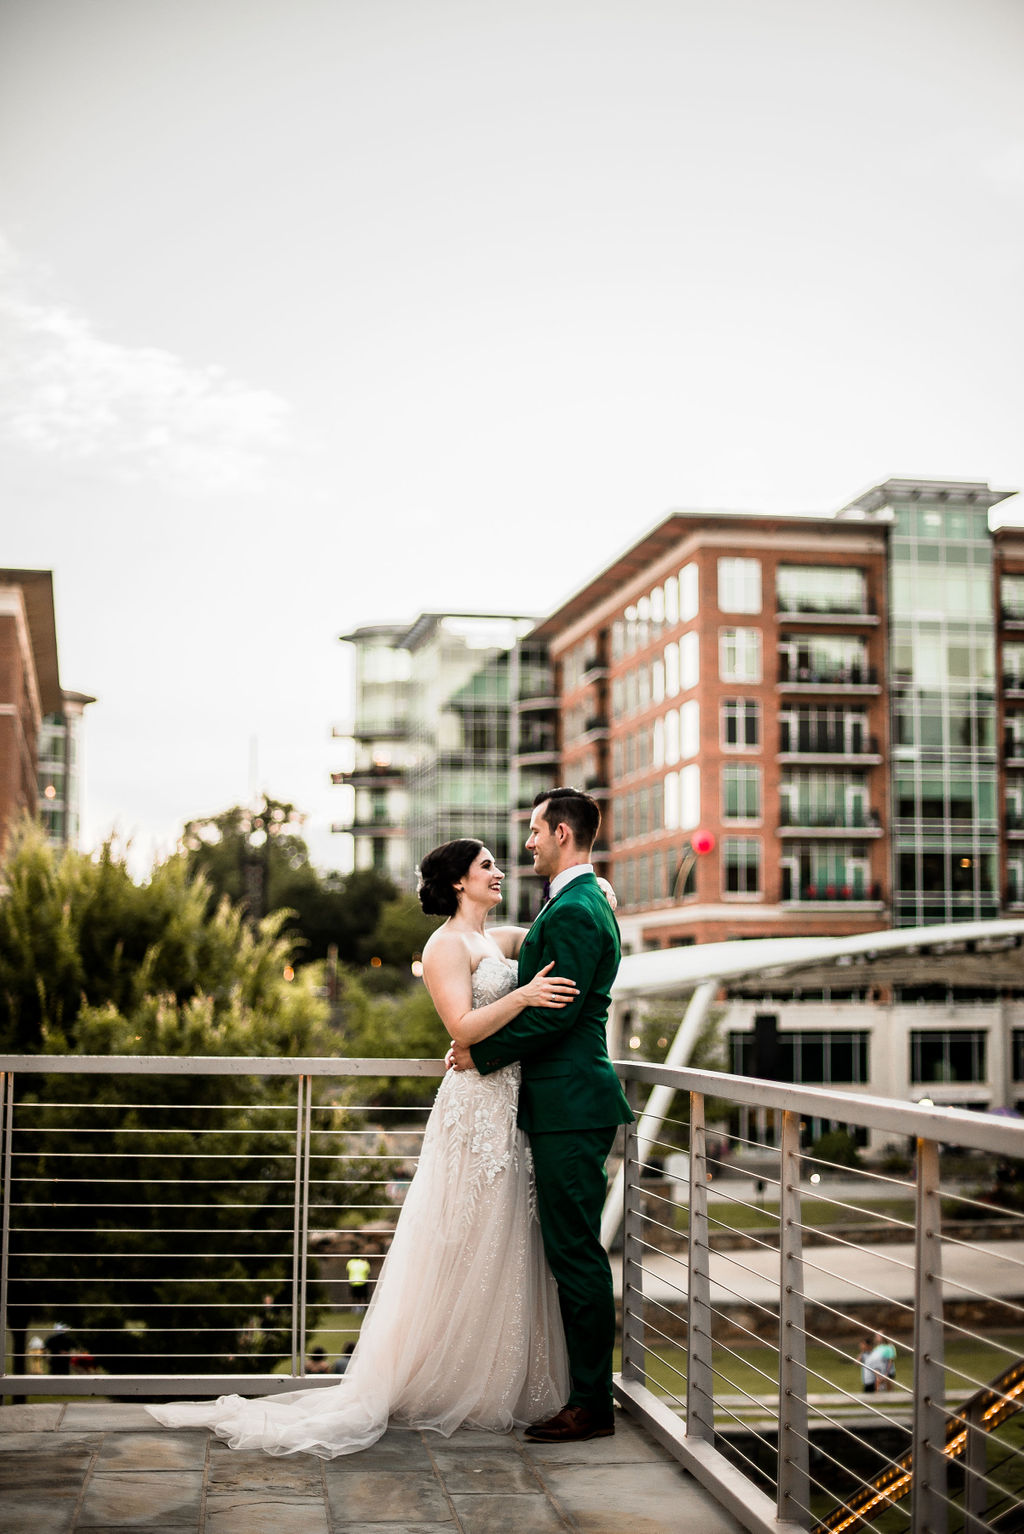 Downtown_Greenville_Wedding_Larkins-620.jpg